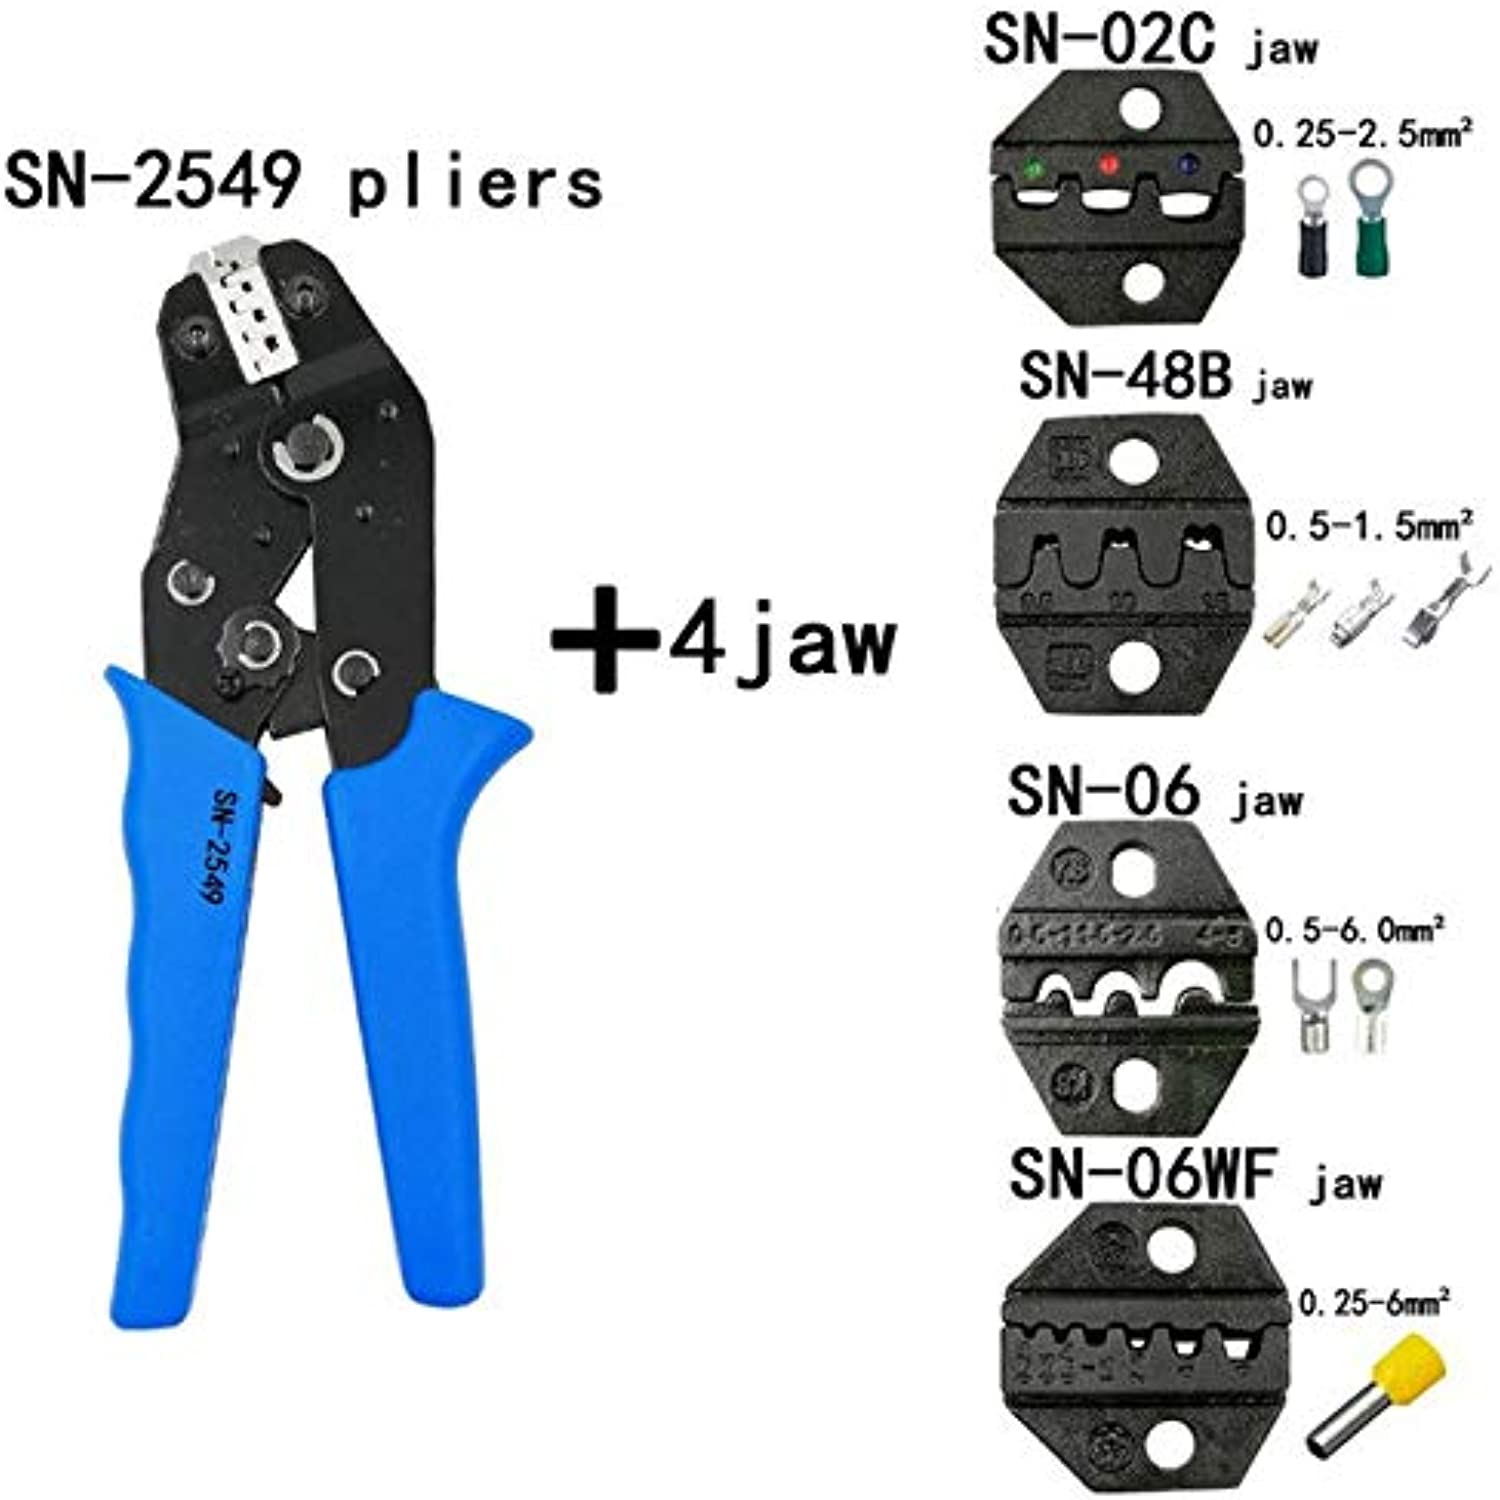 Kit Stripping Cutting Wire Pliers 1041 Suit Tools SN2549 0.081mm2 Pliers 4jaw for Plug Tube Insulation Terminal Brand Tools   SN2549 4JAW